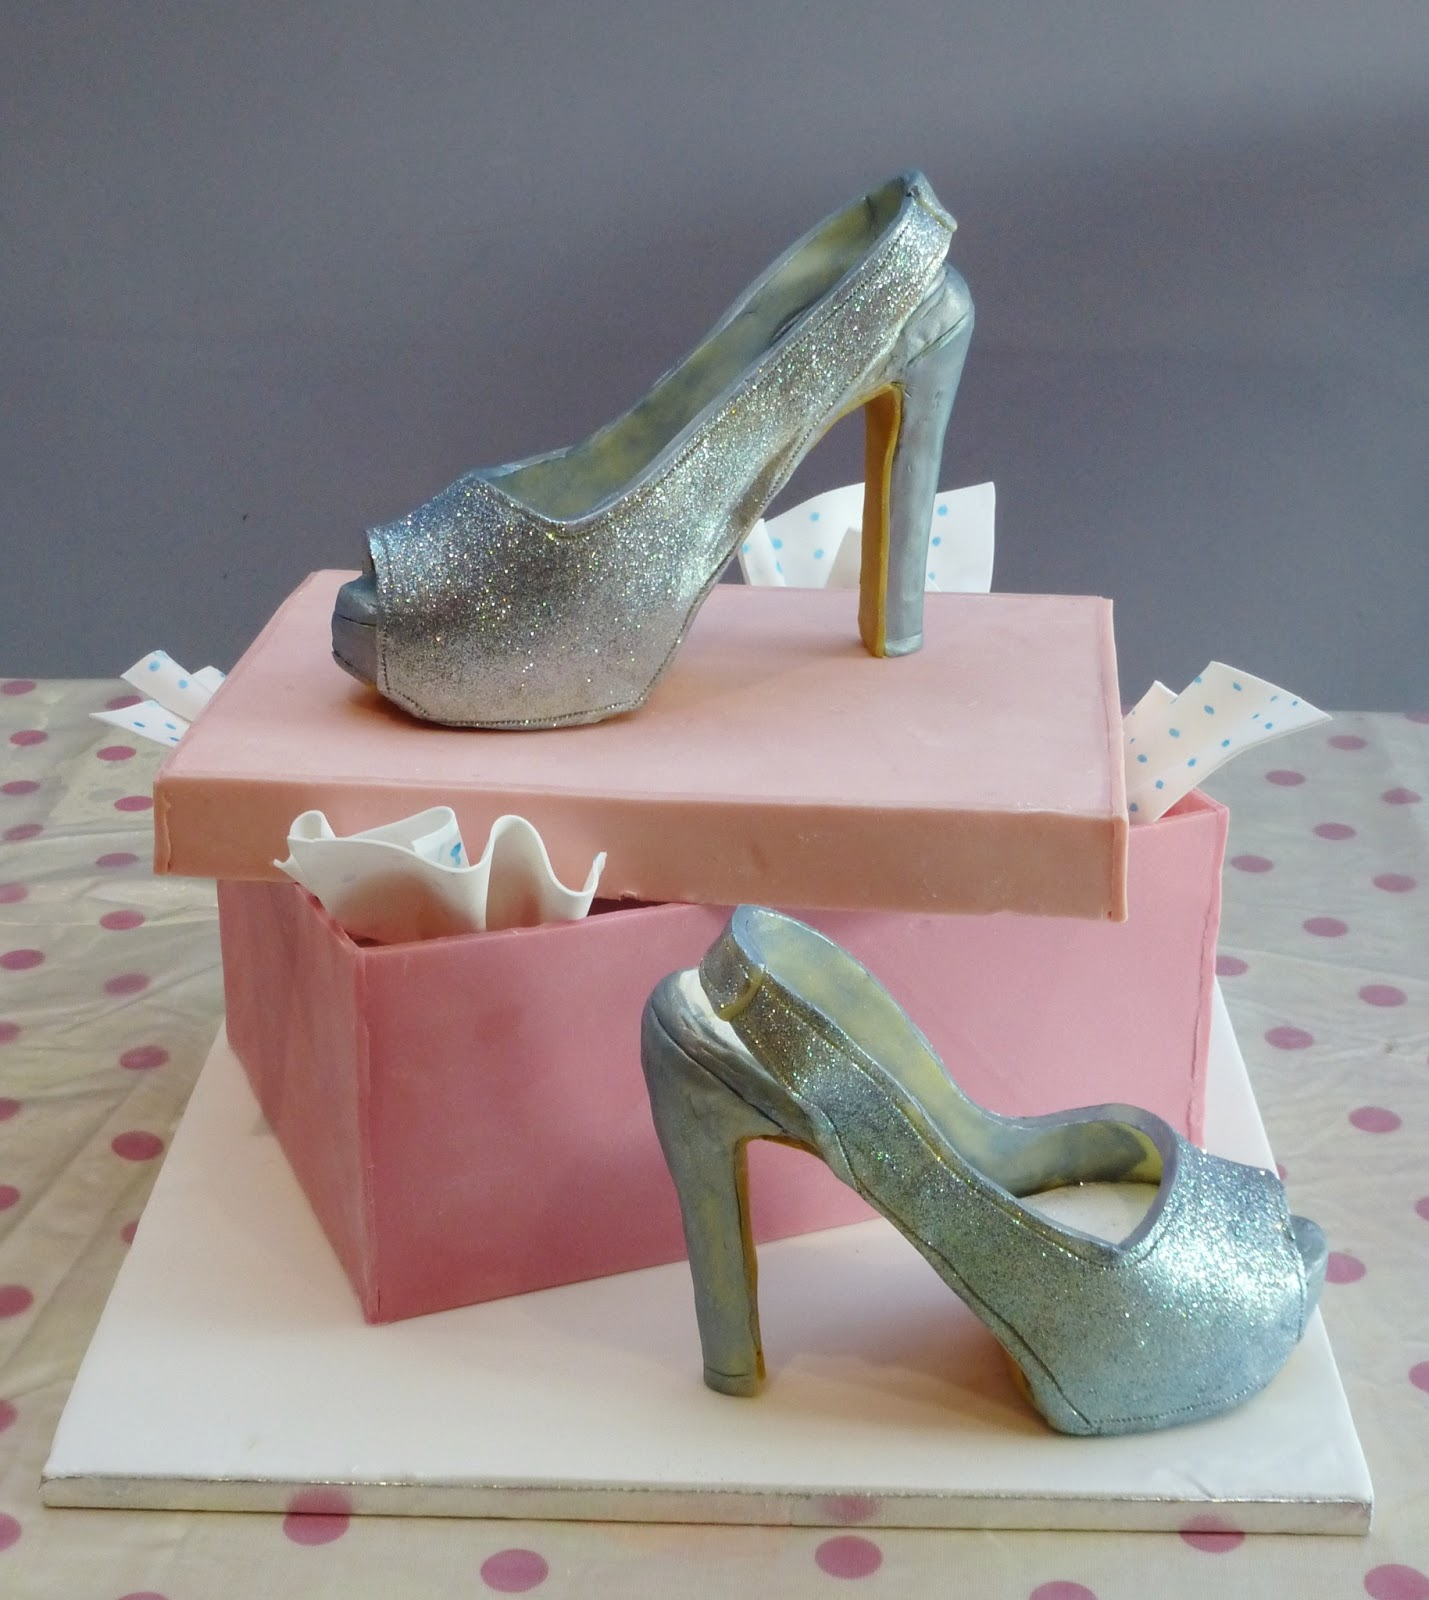 Cake Decorations Silver Shoes : SiliconeMoulds.com Blog: Galloping Gus and Sparkly Shoes ...